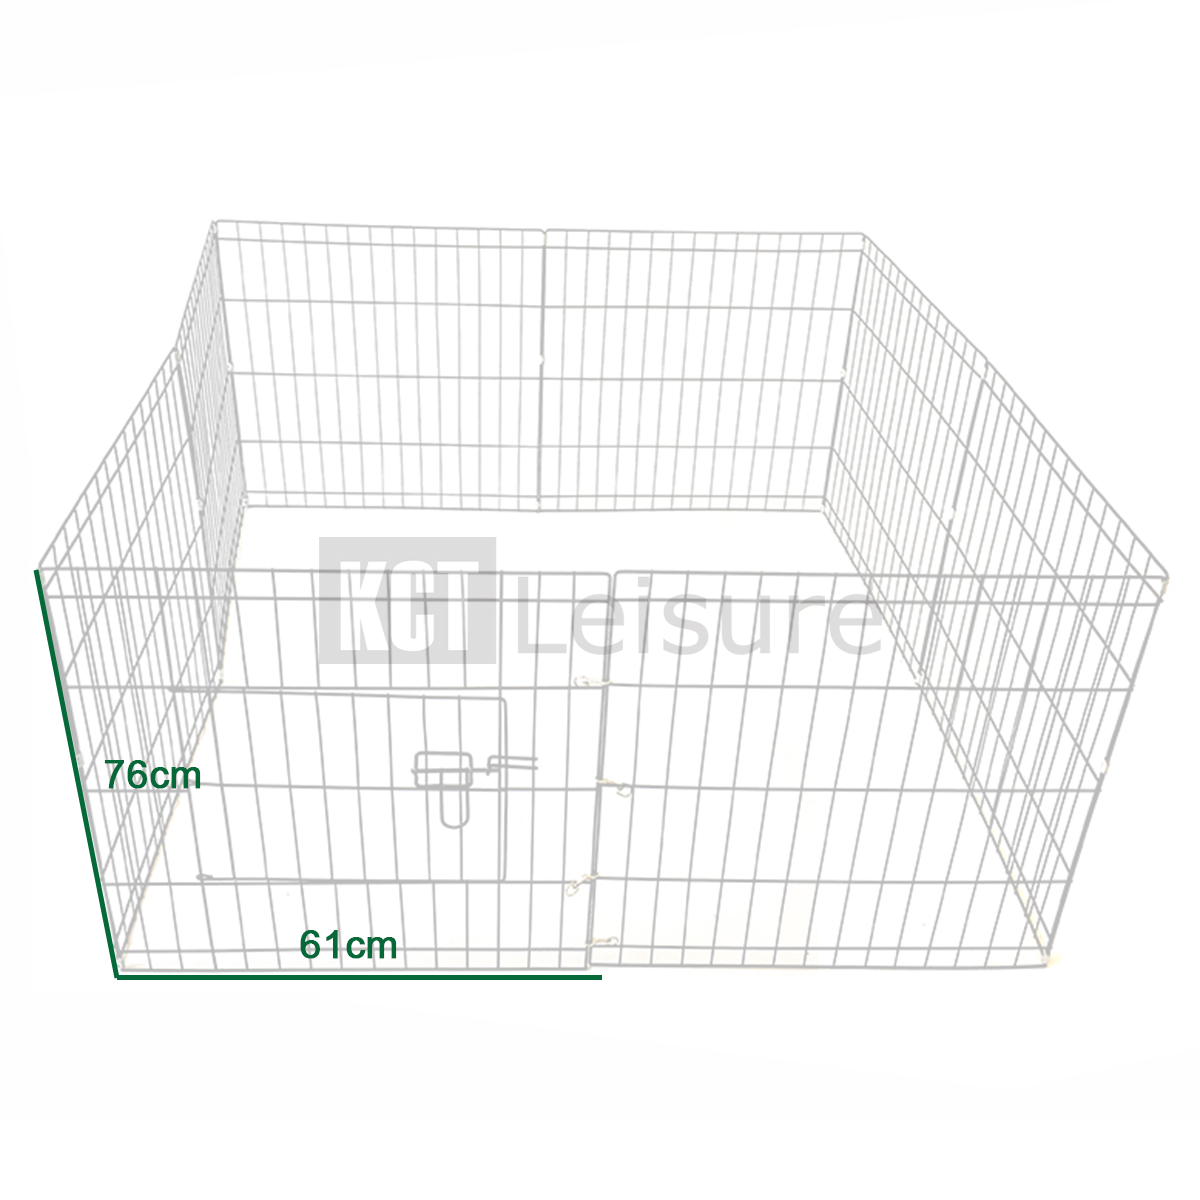 LARGE 76CM PET PUPPY WIRE PLAY PEN CAGE DOG RABBIT RUN